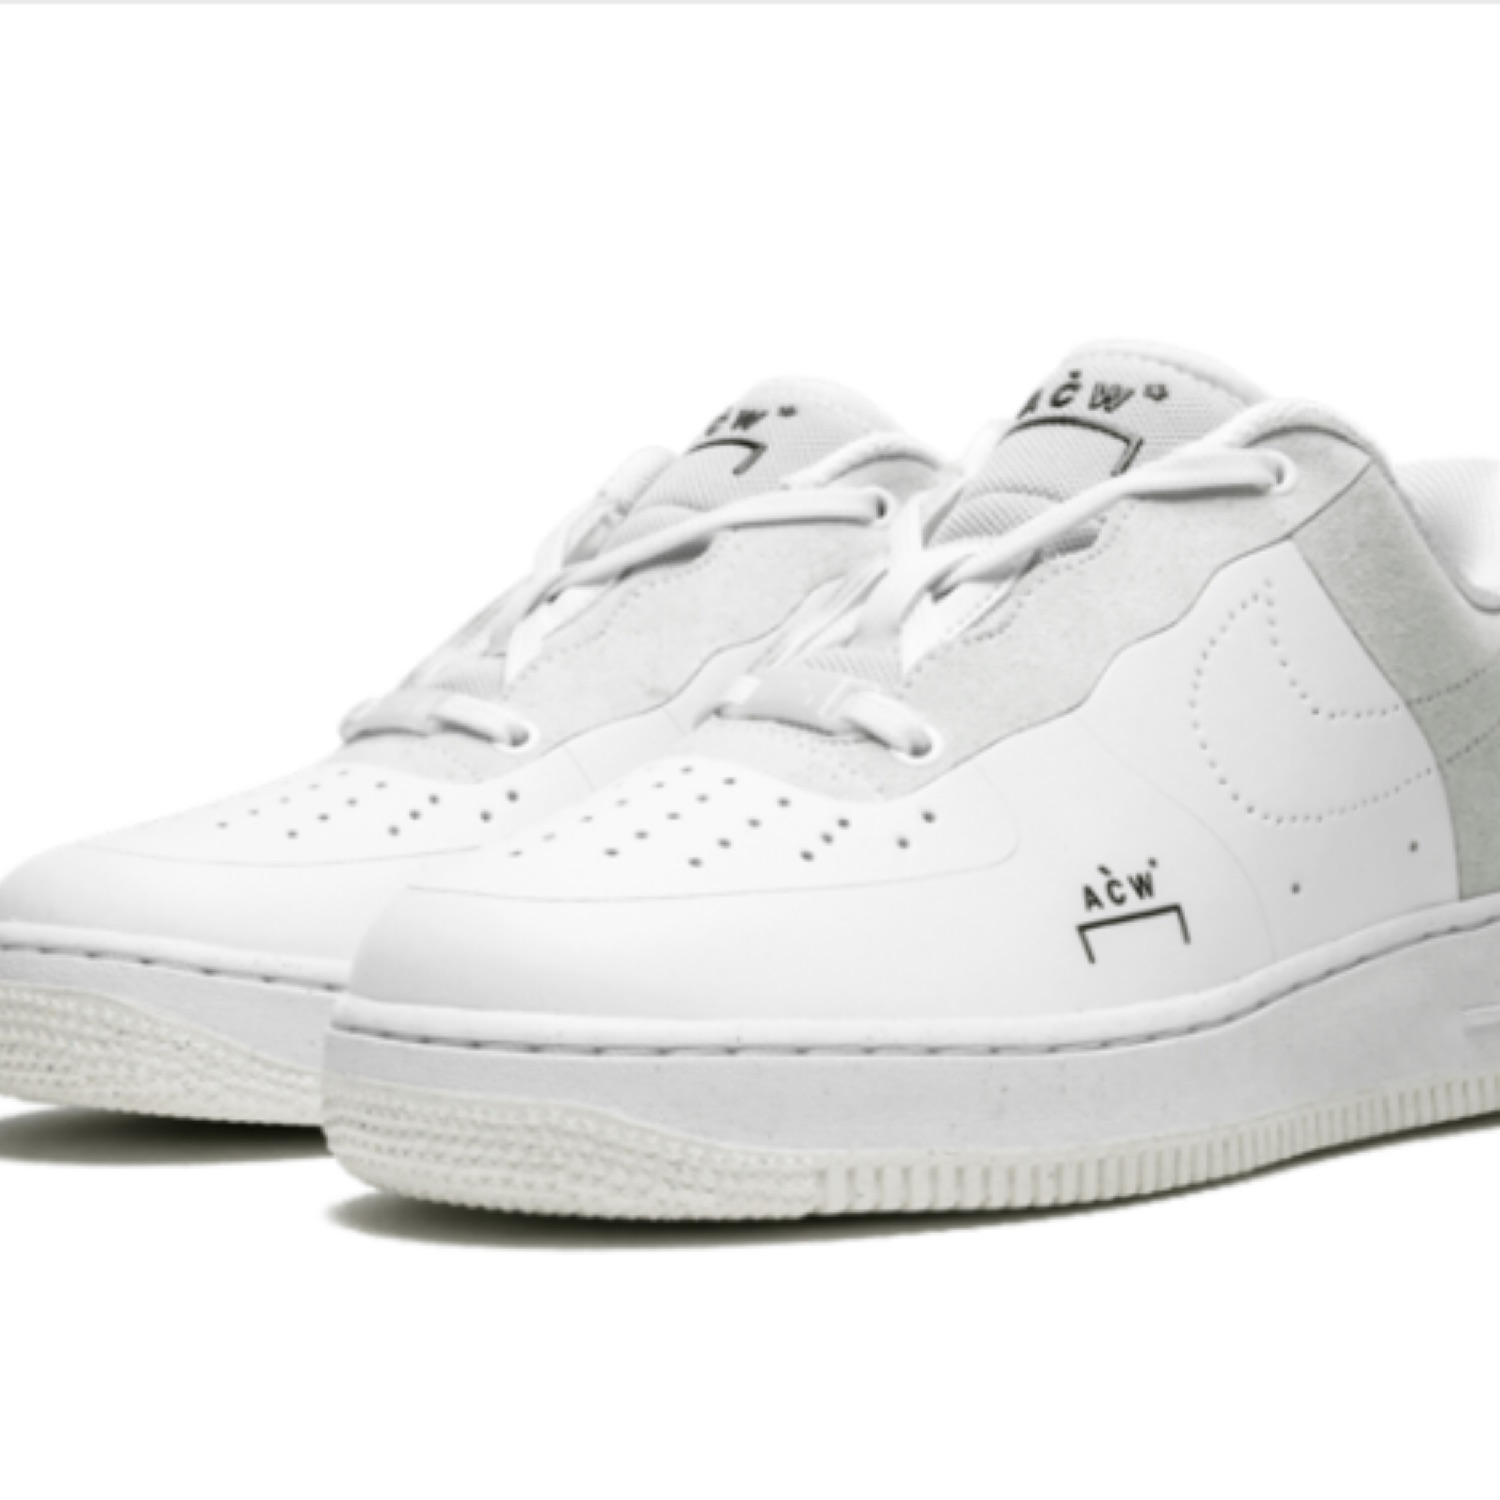 A-Cold-Wall X Nike Air Force 1 Low White